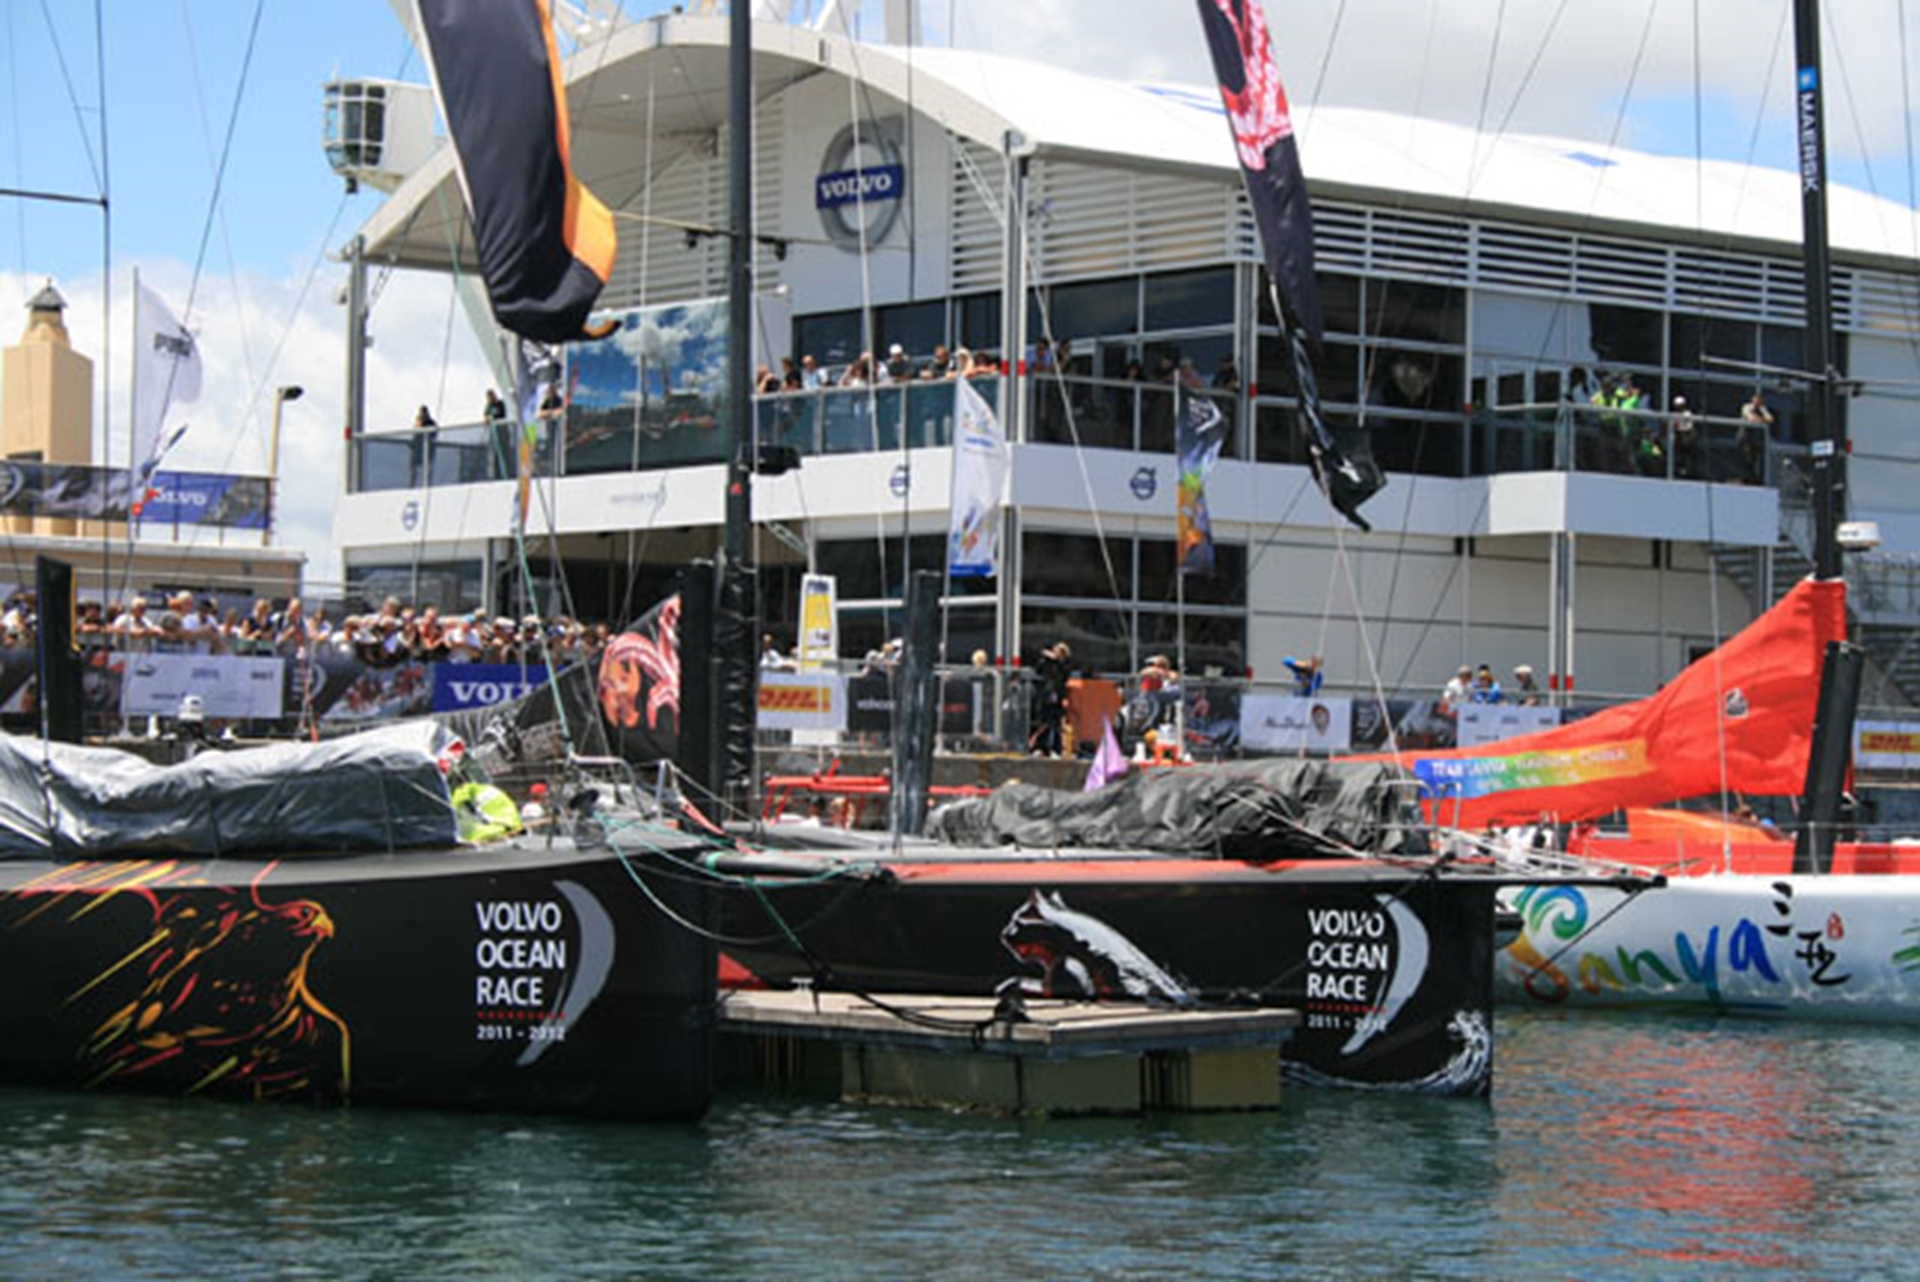 Volvo Ocean Race Harbour